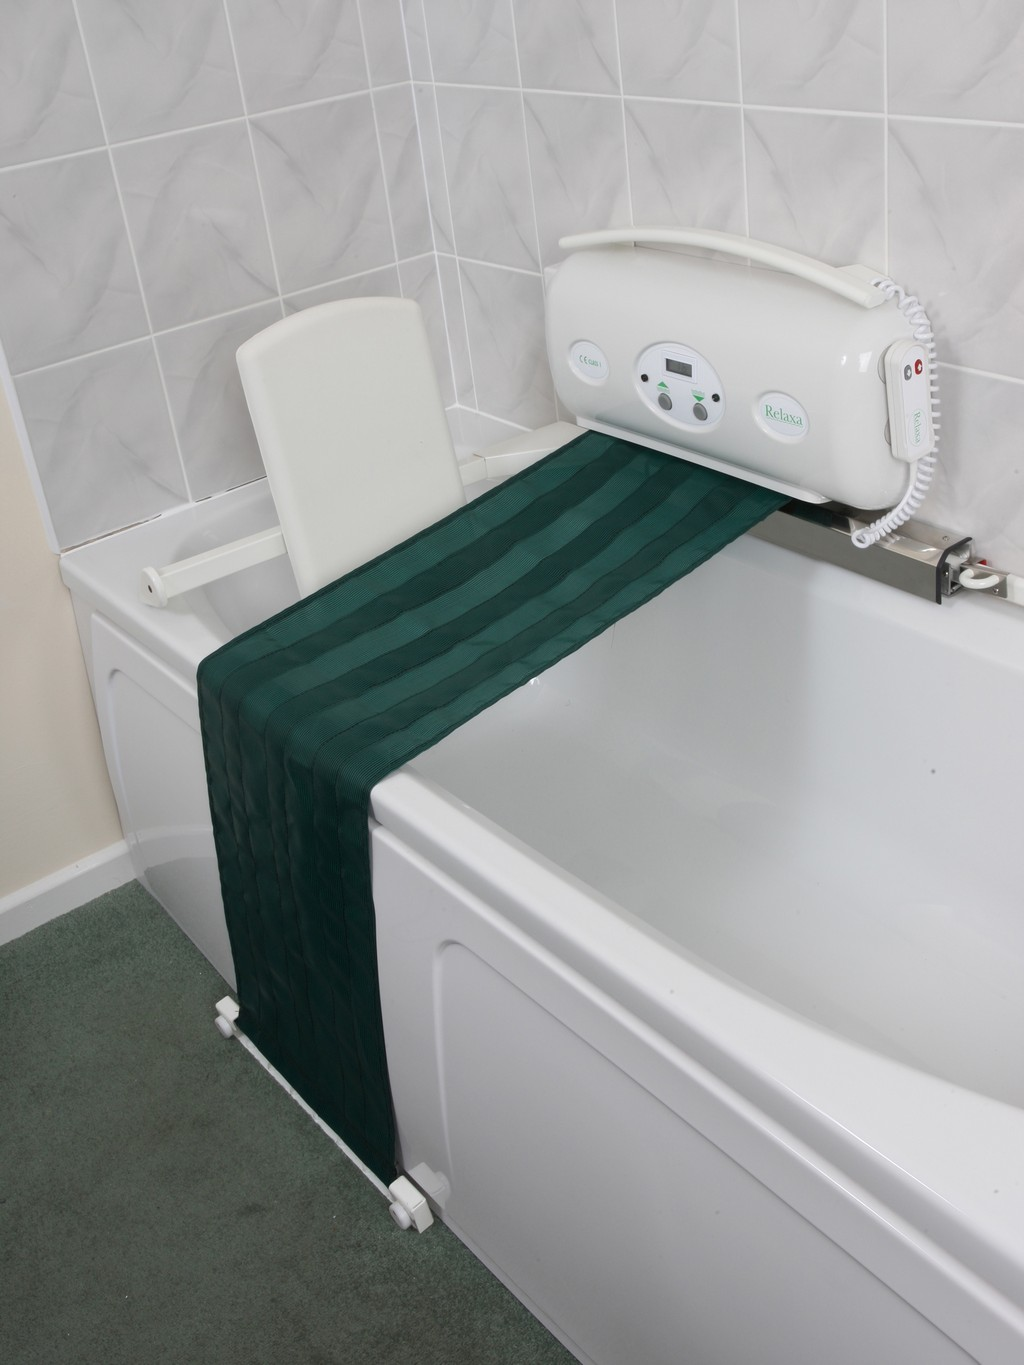 ameriglide bath lift, auqa bath lift, bath lifts for totally handicapped, unblocking lift and turn bath drain